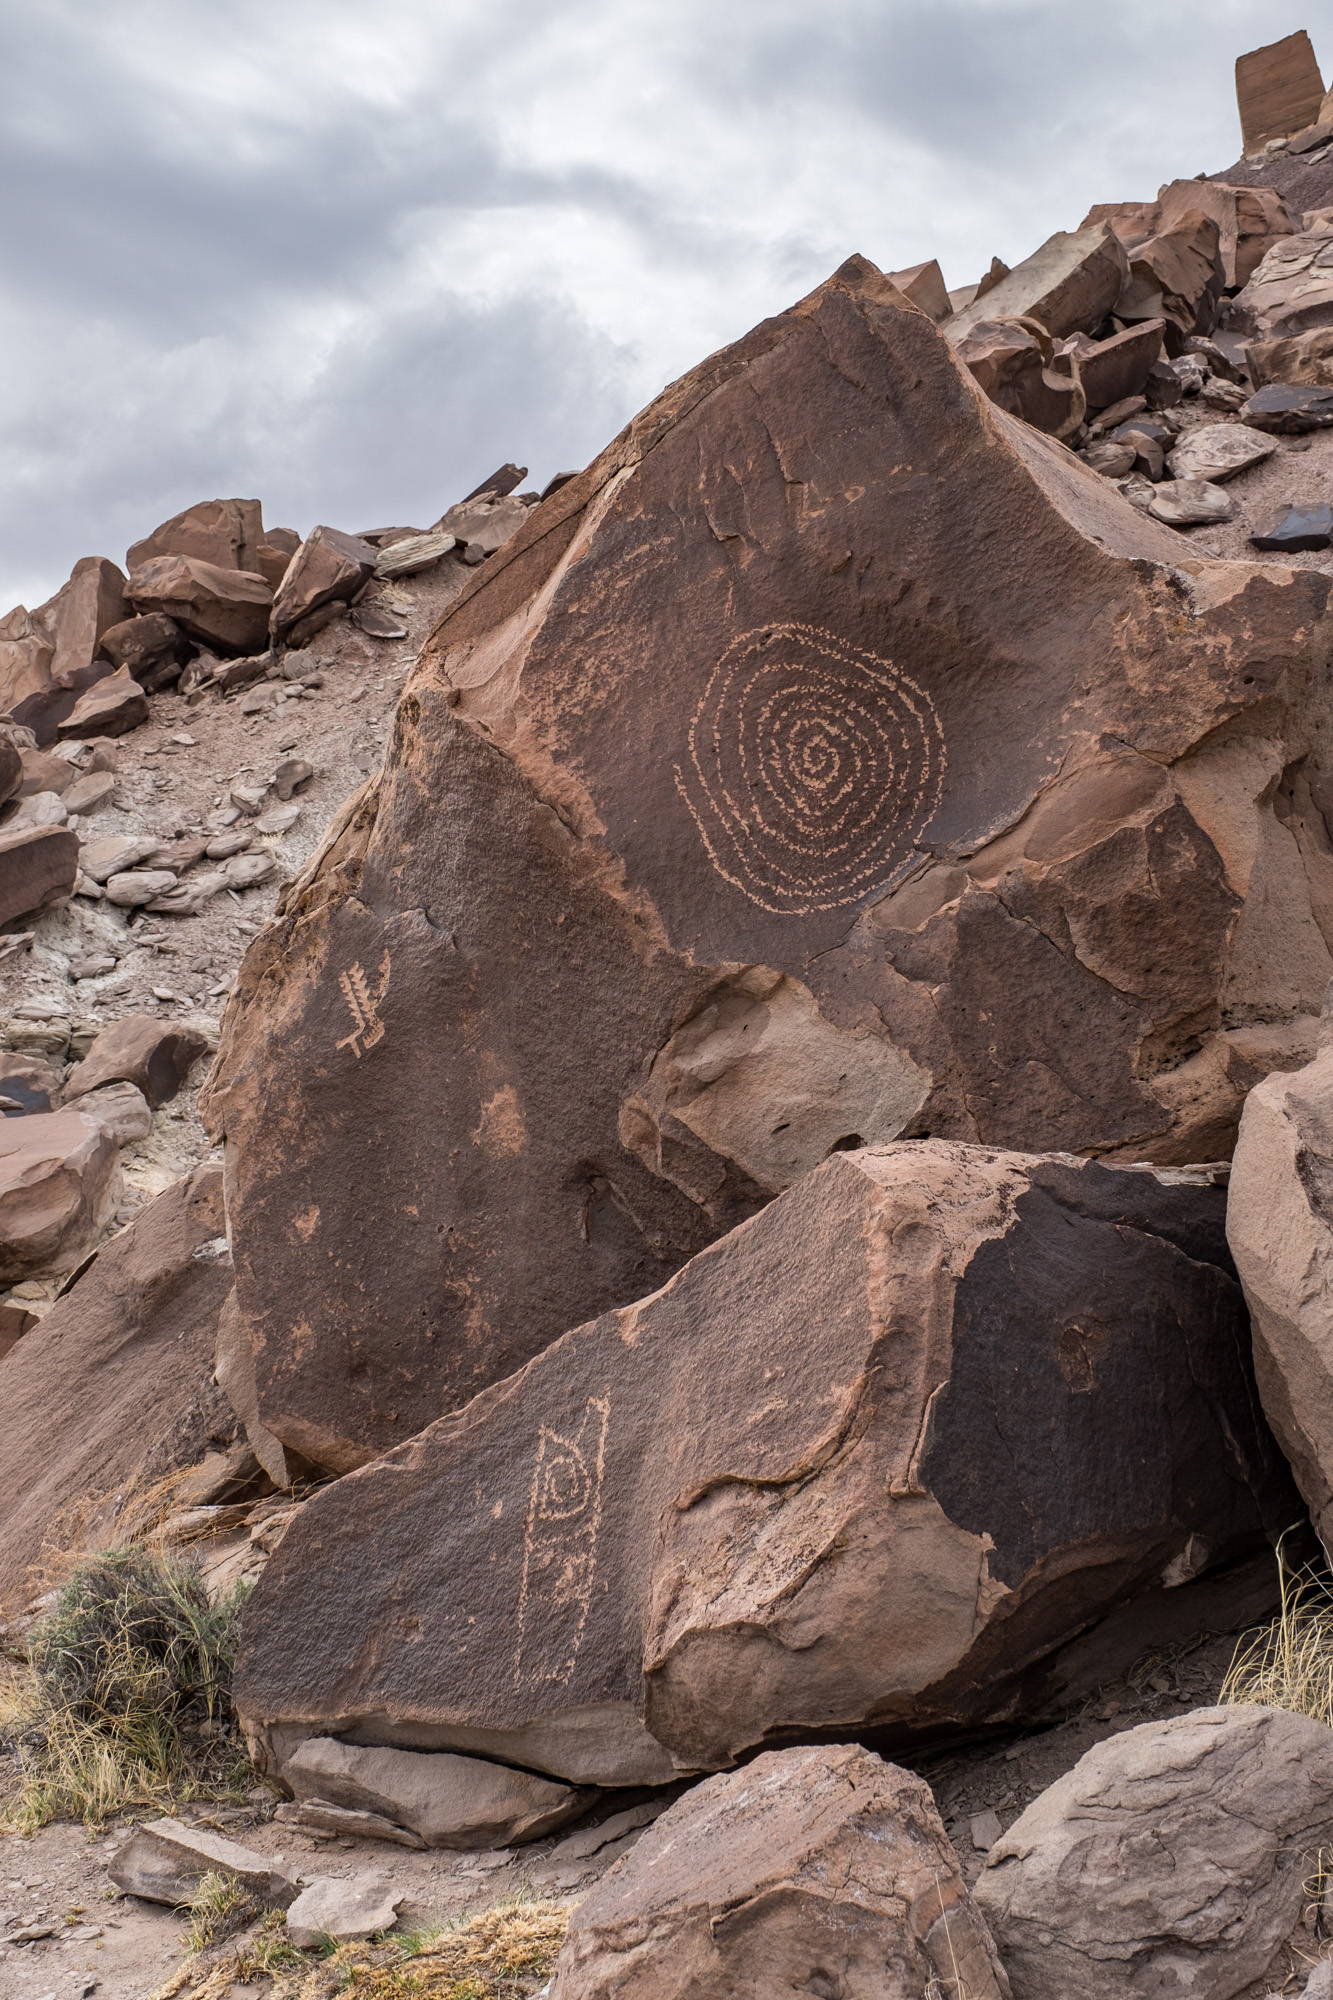 This sun petroglyph is perfectly cut in half by light and shadow at the equinoxes. Amazing.